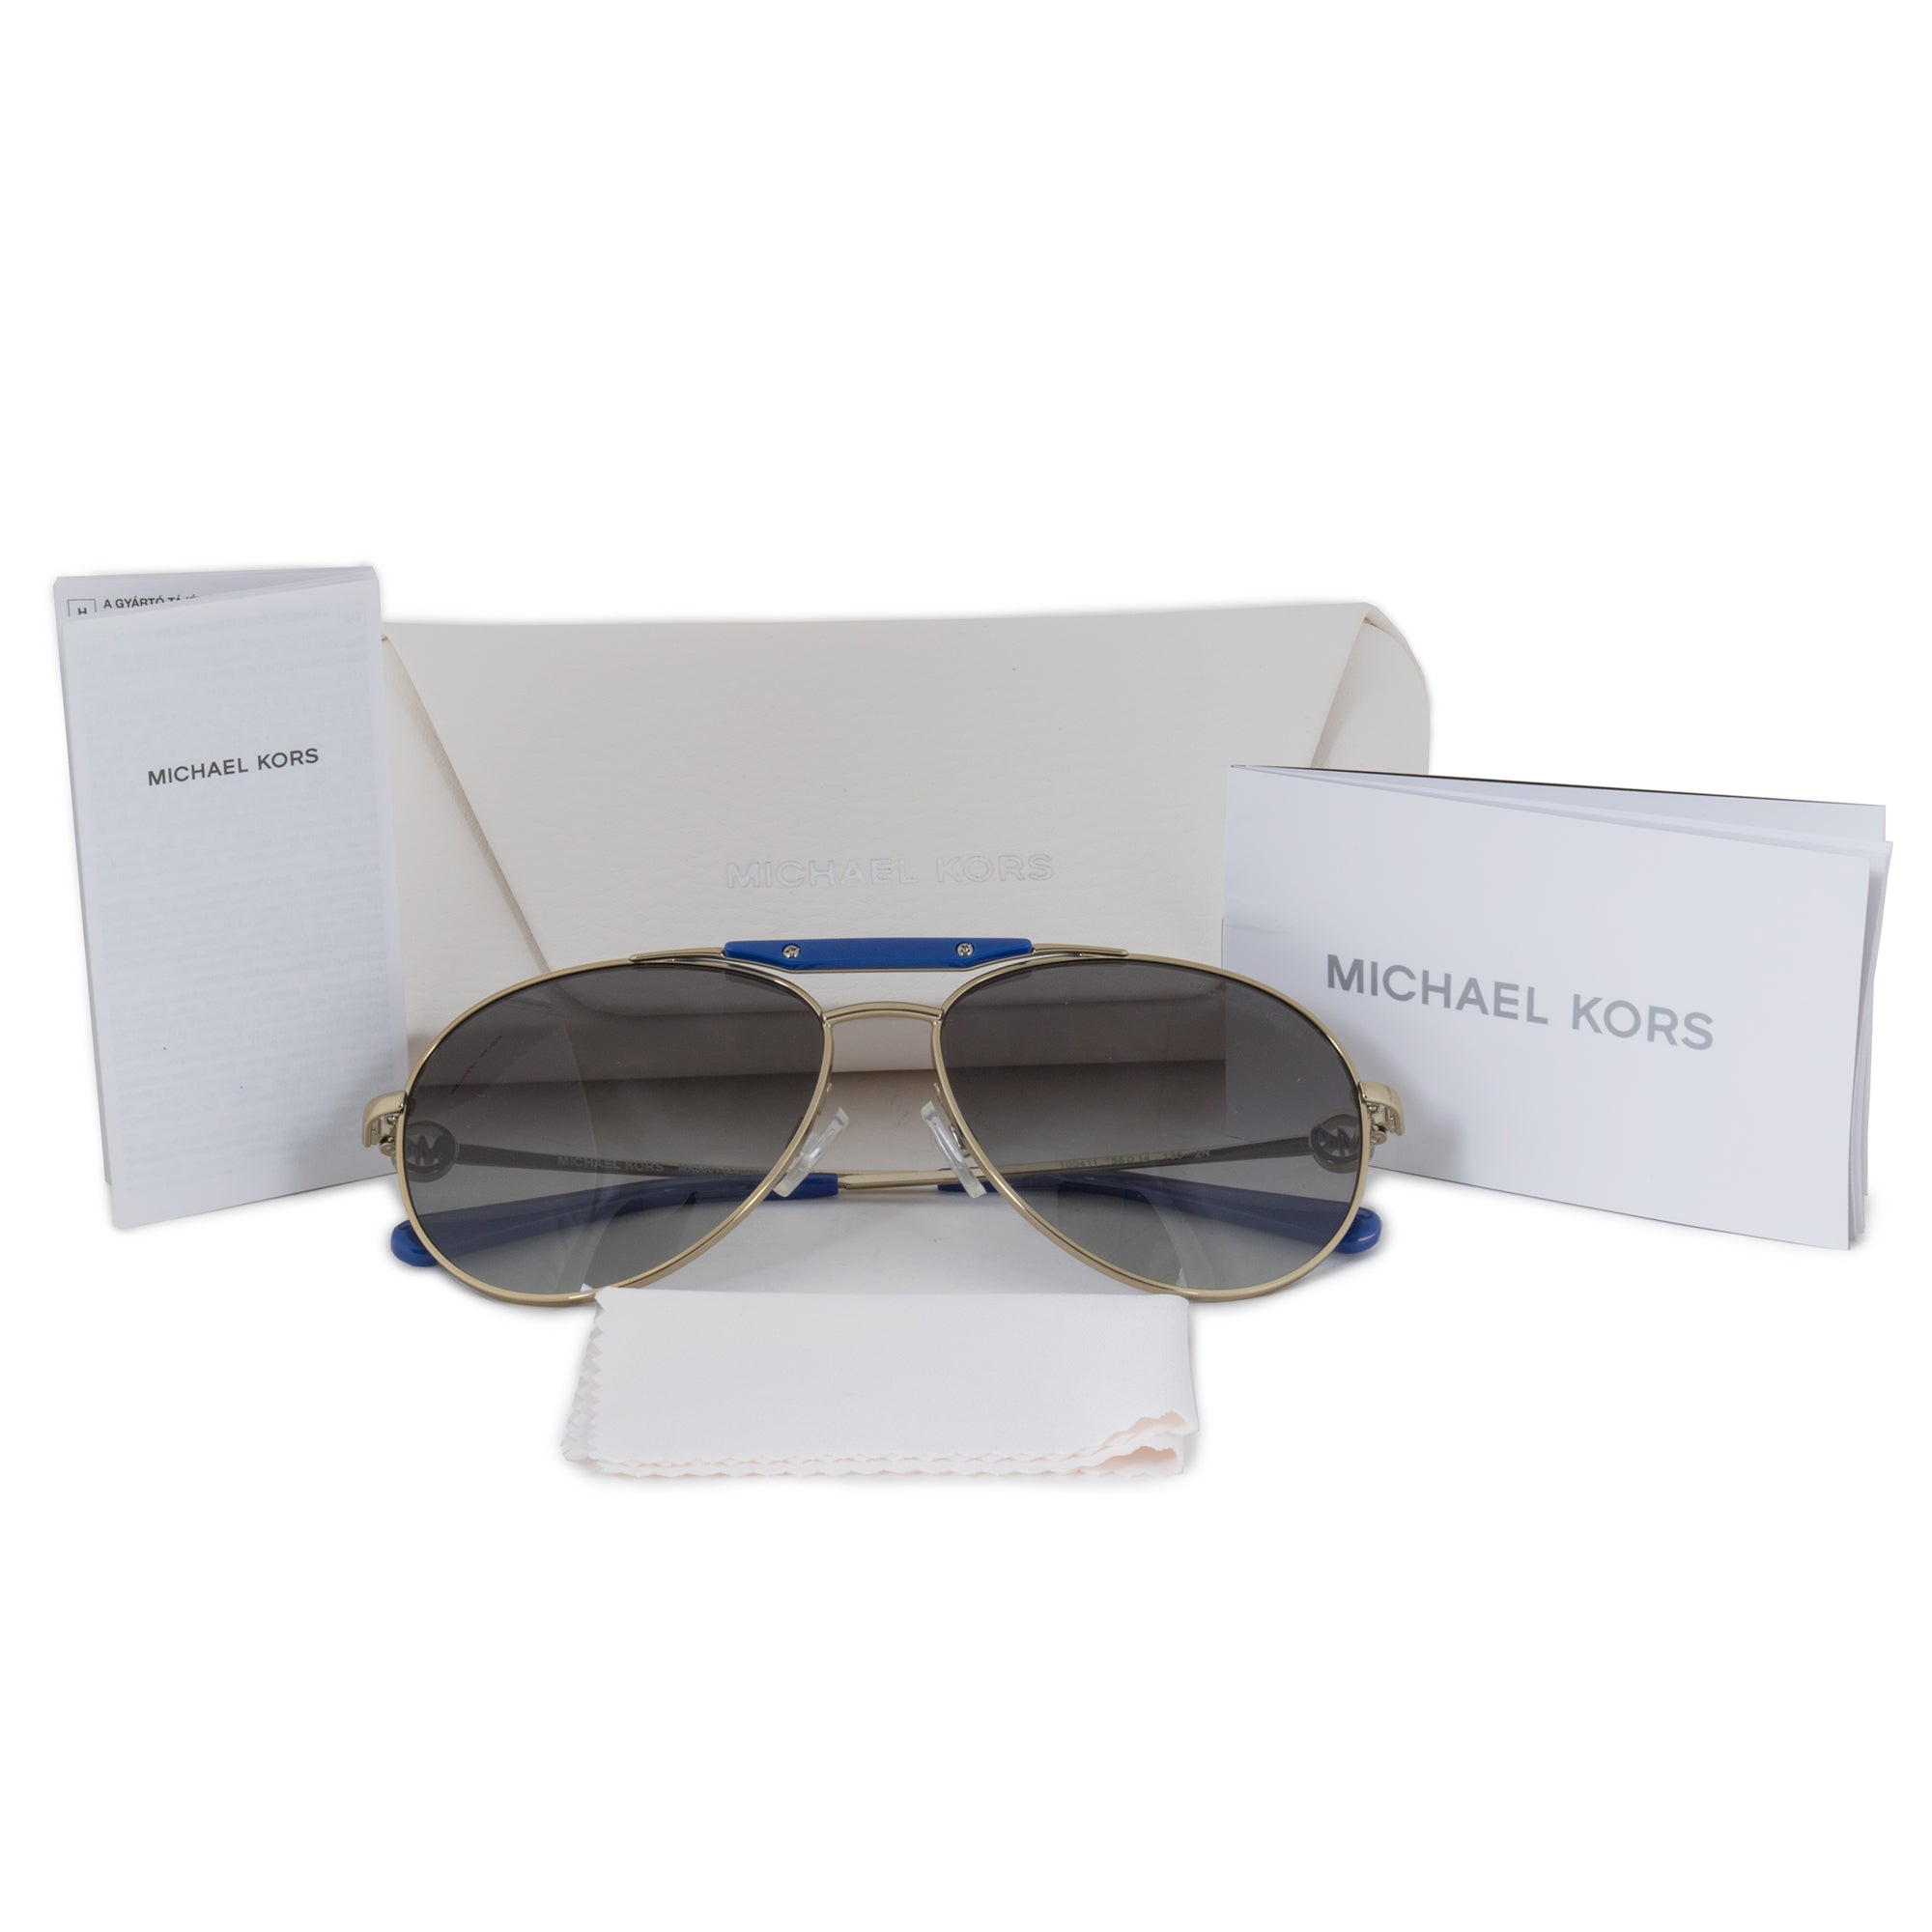 Michael Kors Zanzibar Aviator Sunglasses MK5001 100411 58 | Gold Frame | Gray Gradient Lenses